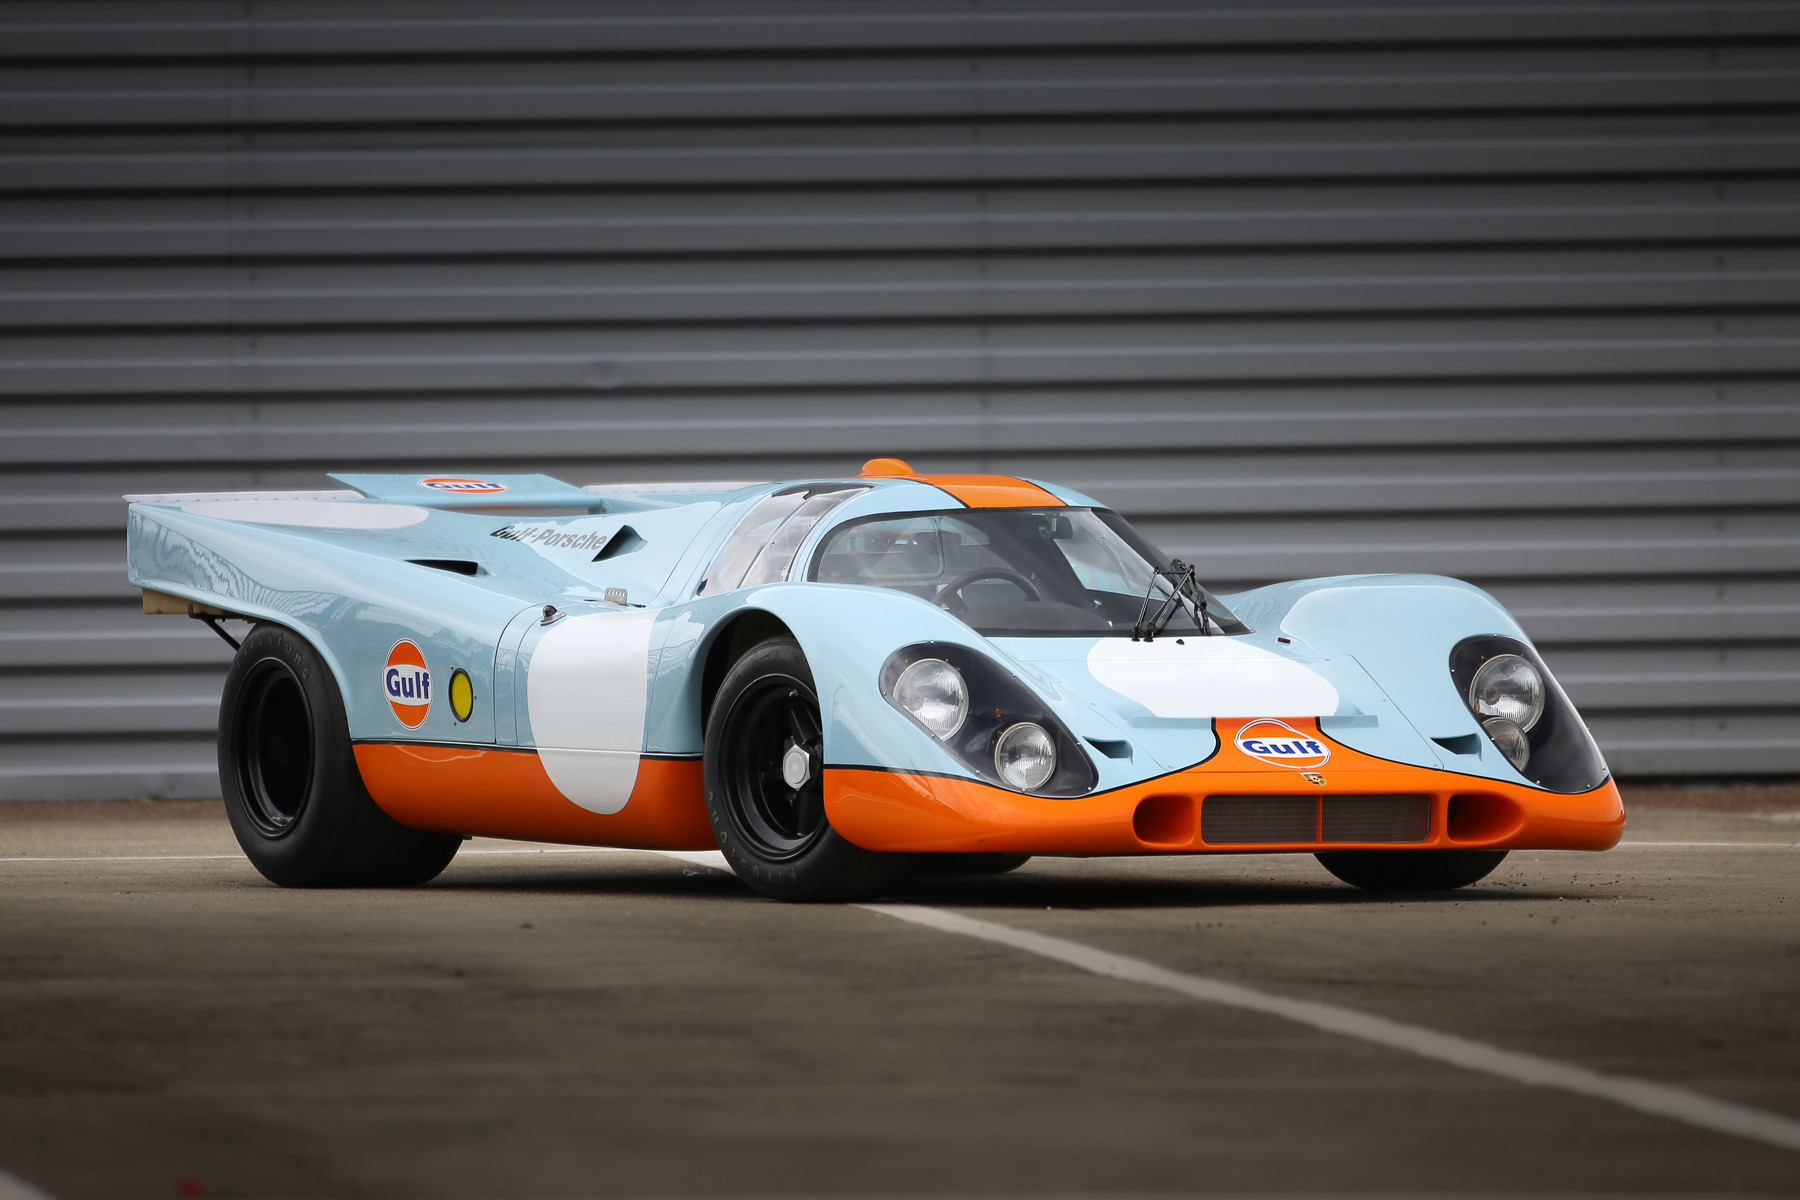 https://www.supercars.net/blog/wp-content/uploads/2018/06/1970-Porsche-917K-14080000.jpg